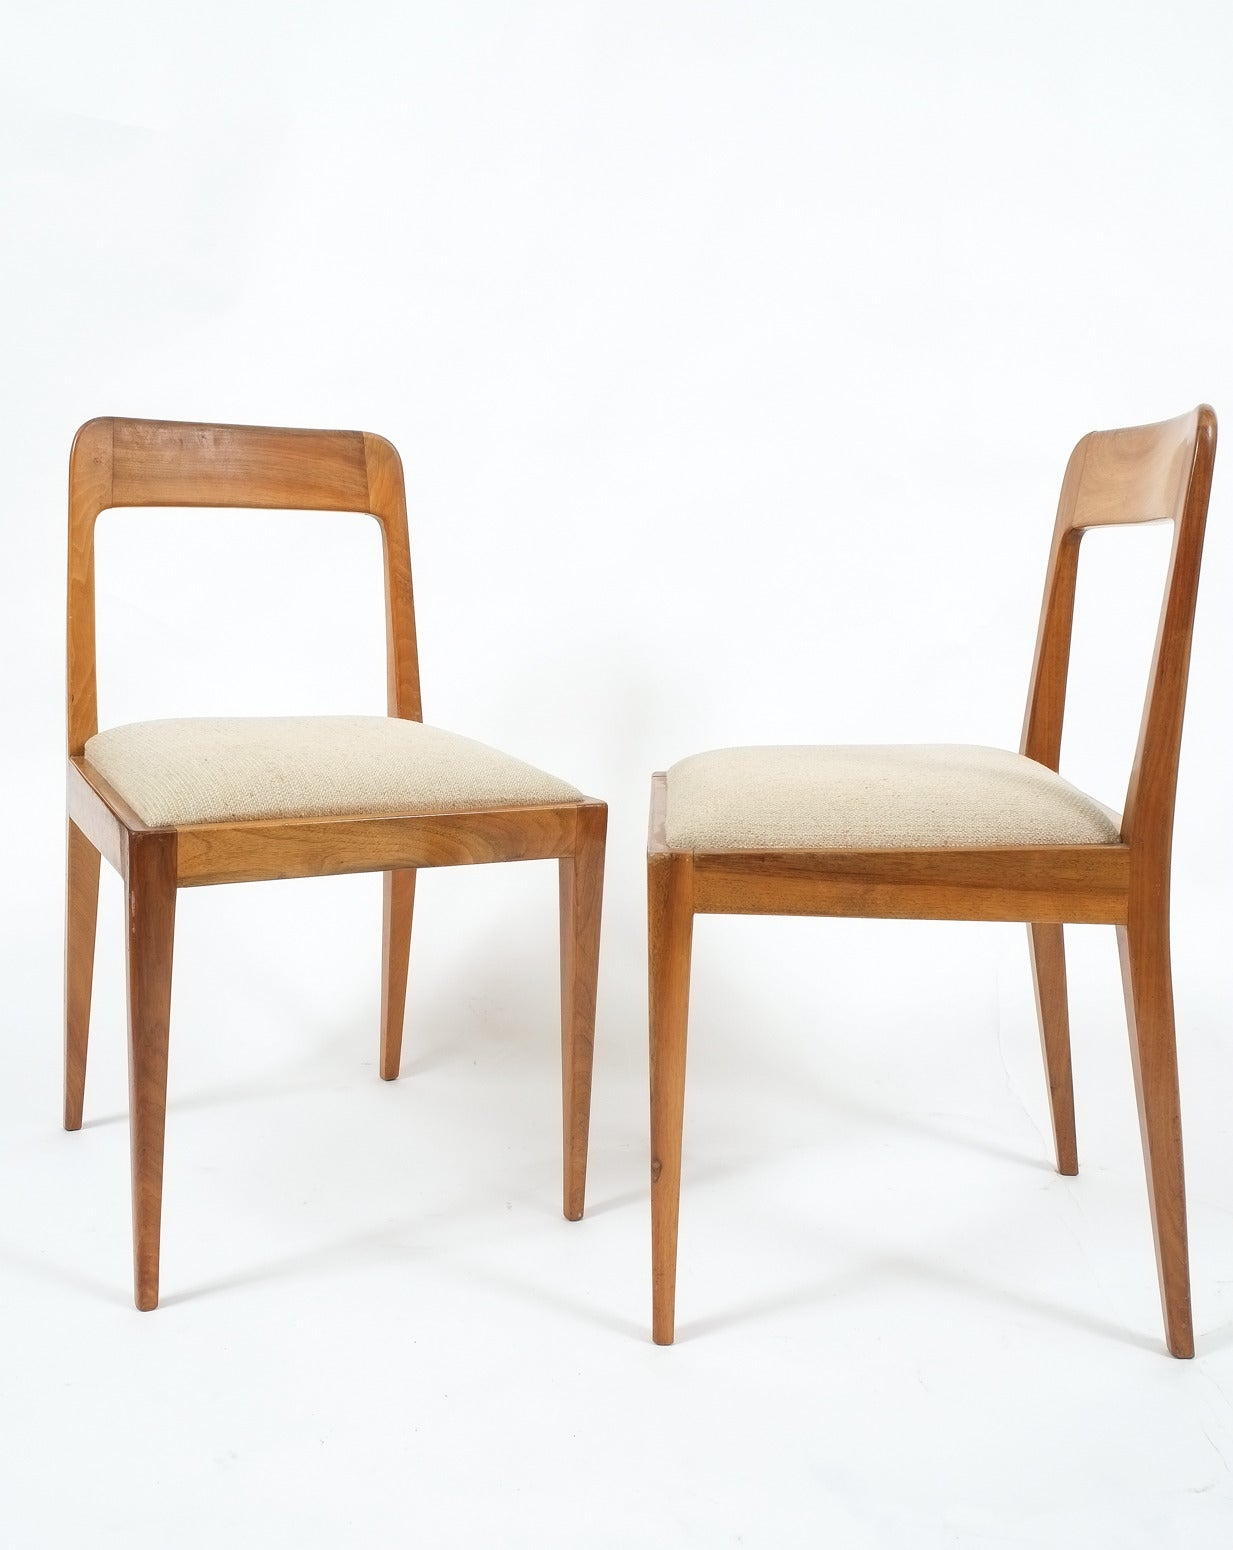 Mid-20th Century Set of Six Carl Auböck Wooden Chairs Mid-Century, 1950 For Sale